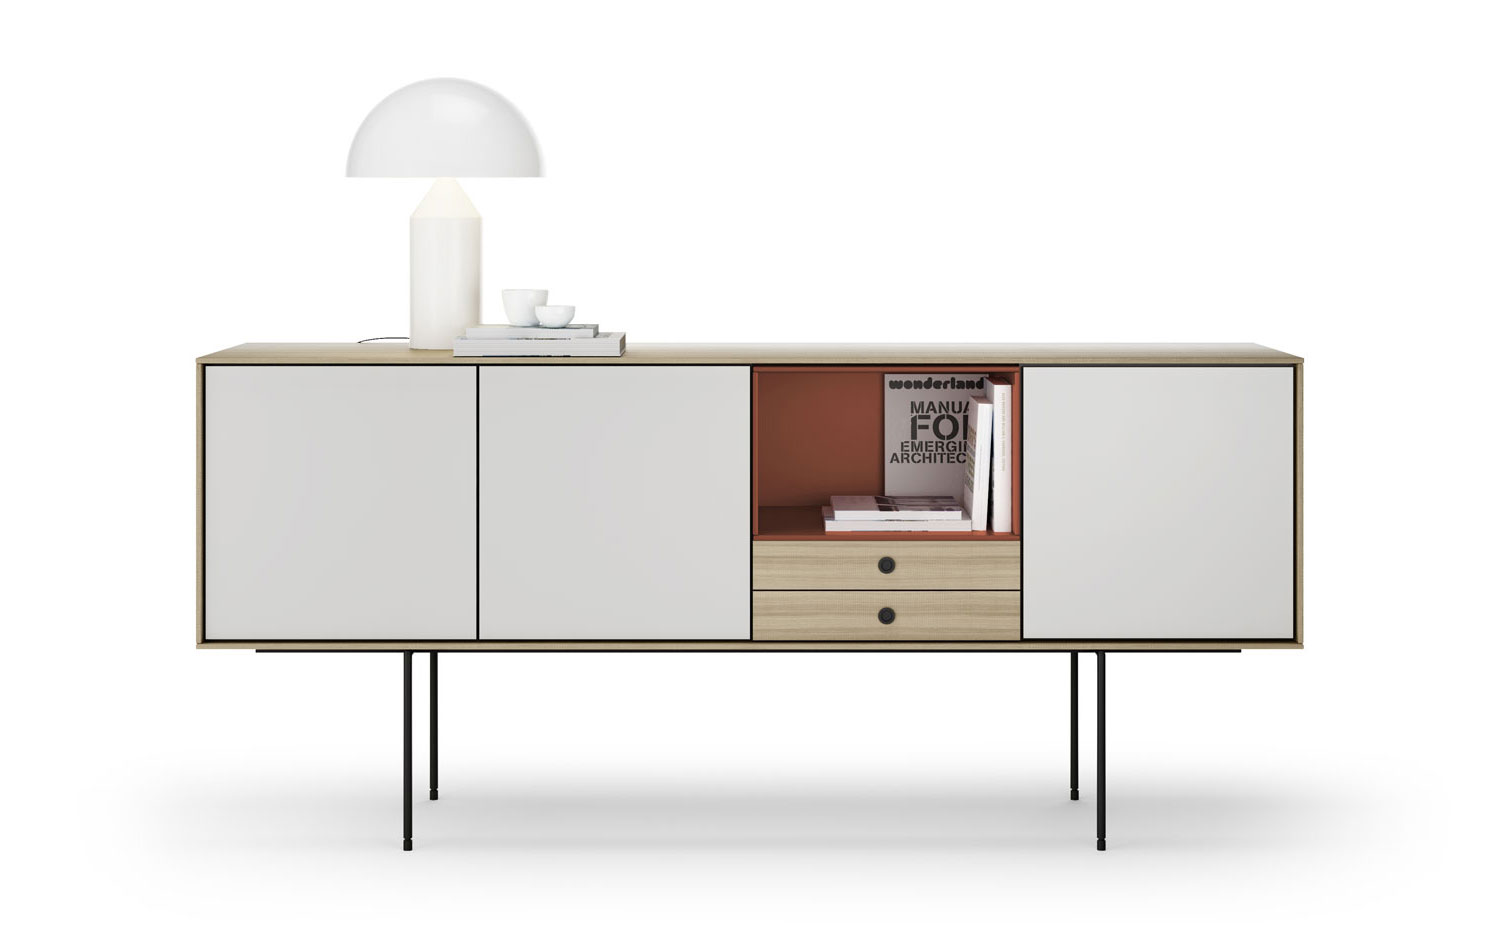 Aura Sideboard by Angel Marti & Enrique Delamo for Treku at Maison & Objet 2015 | Yellowtrace